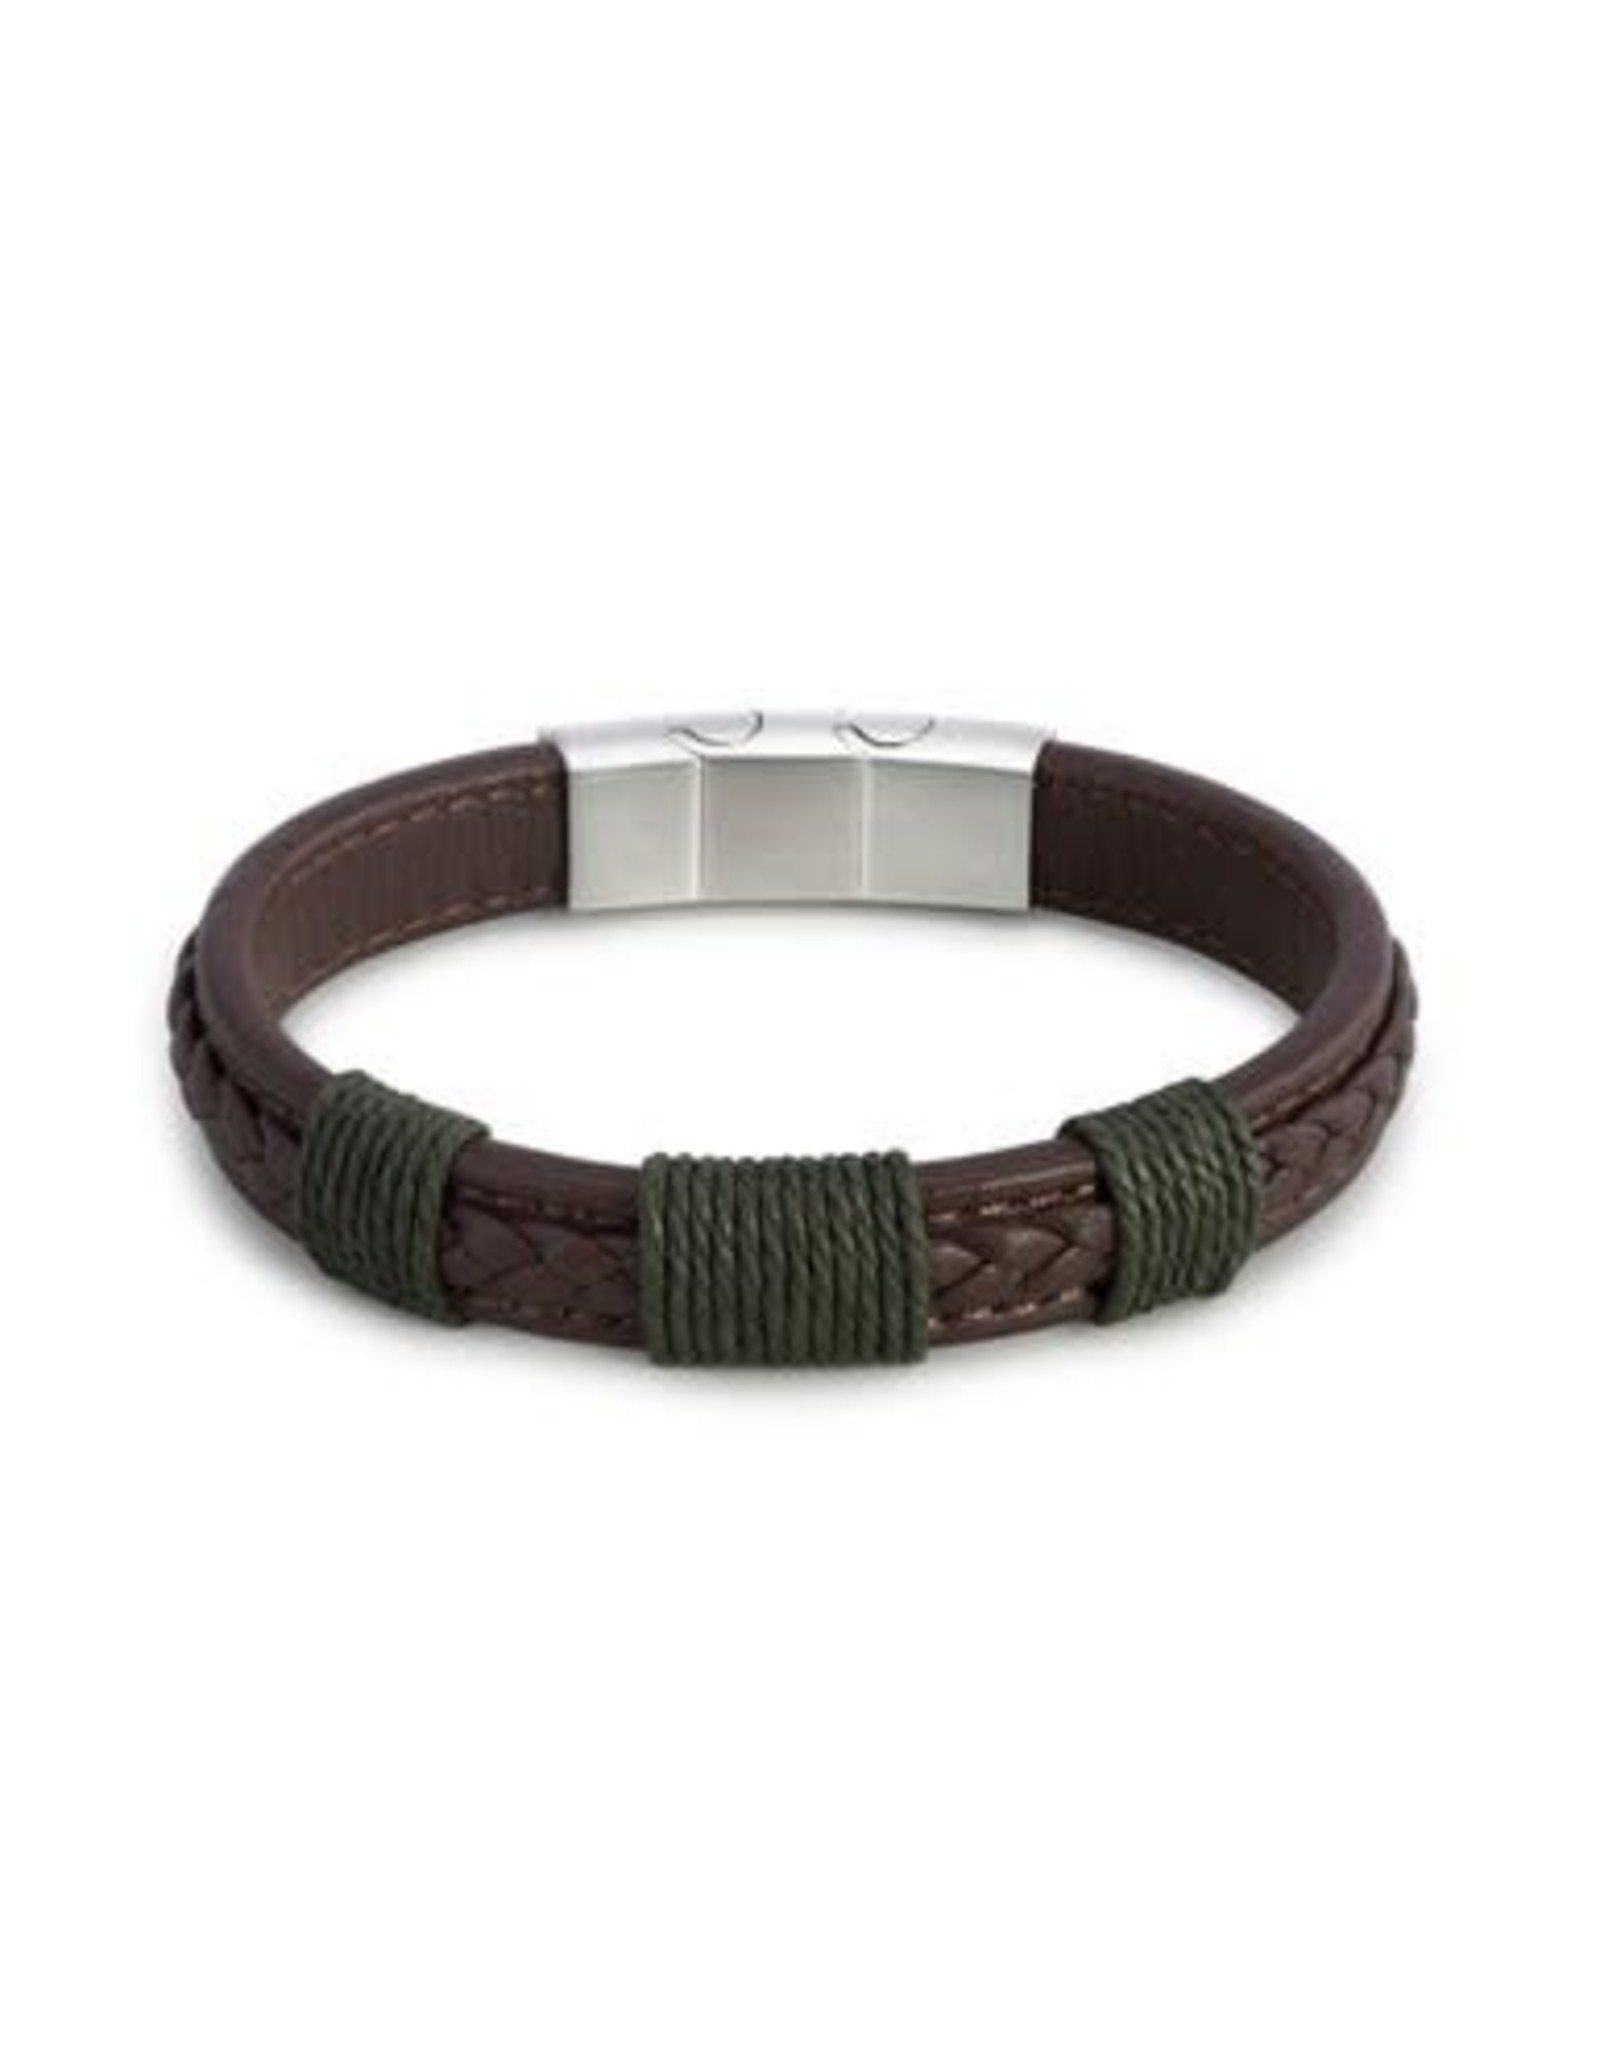 Demdaco BRAC MENS BROWN LEATHER